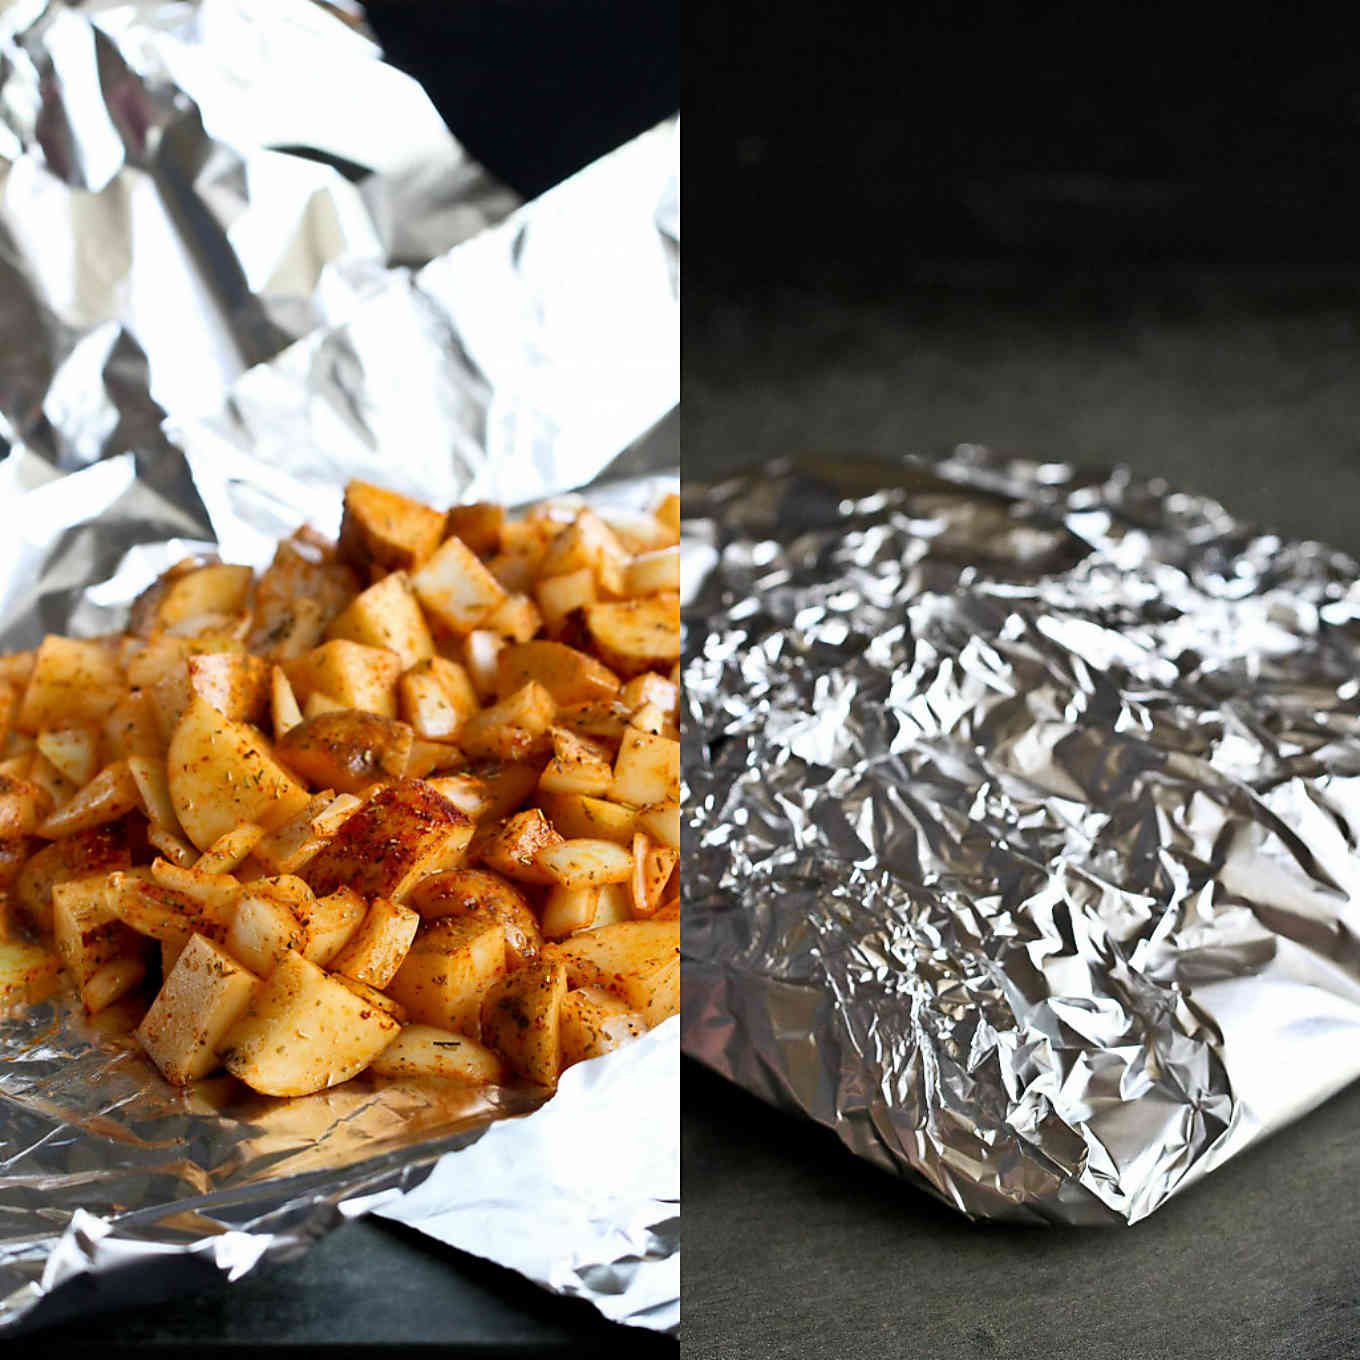 Seasoned potatoes wrapped in a foil packet, ready for the barbecue.